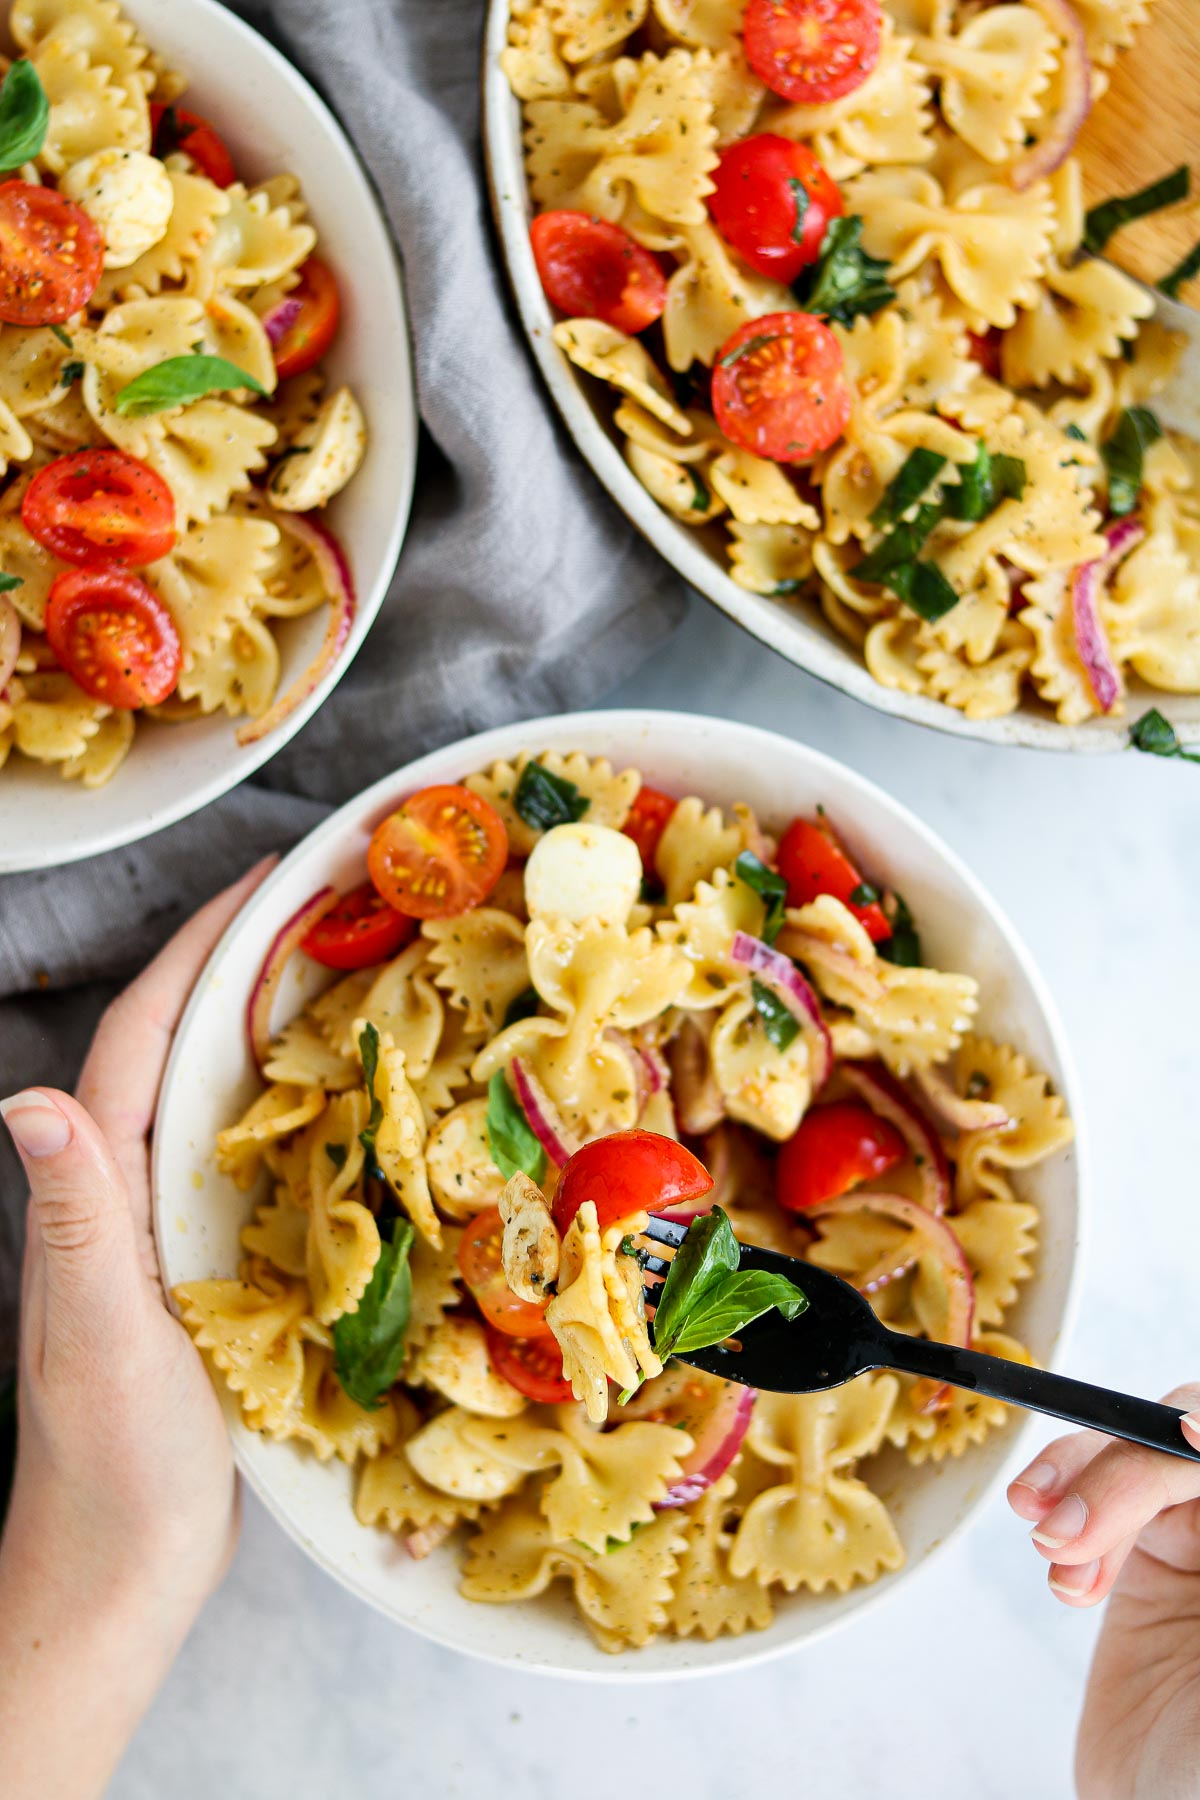 Pasta with cherry tomatoes, mozzarella, basil, and a balsamic dressing in a bowl